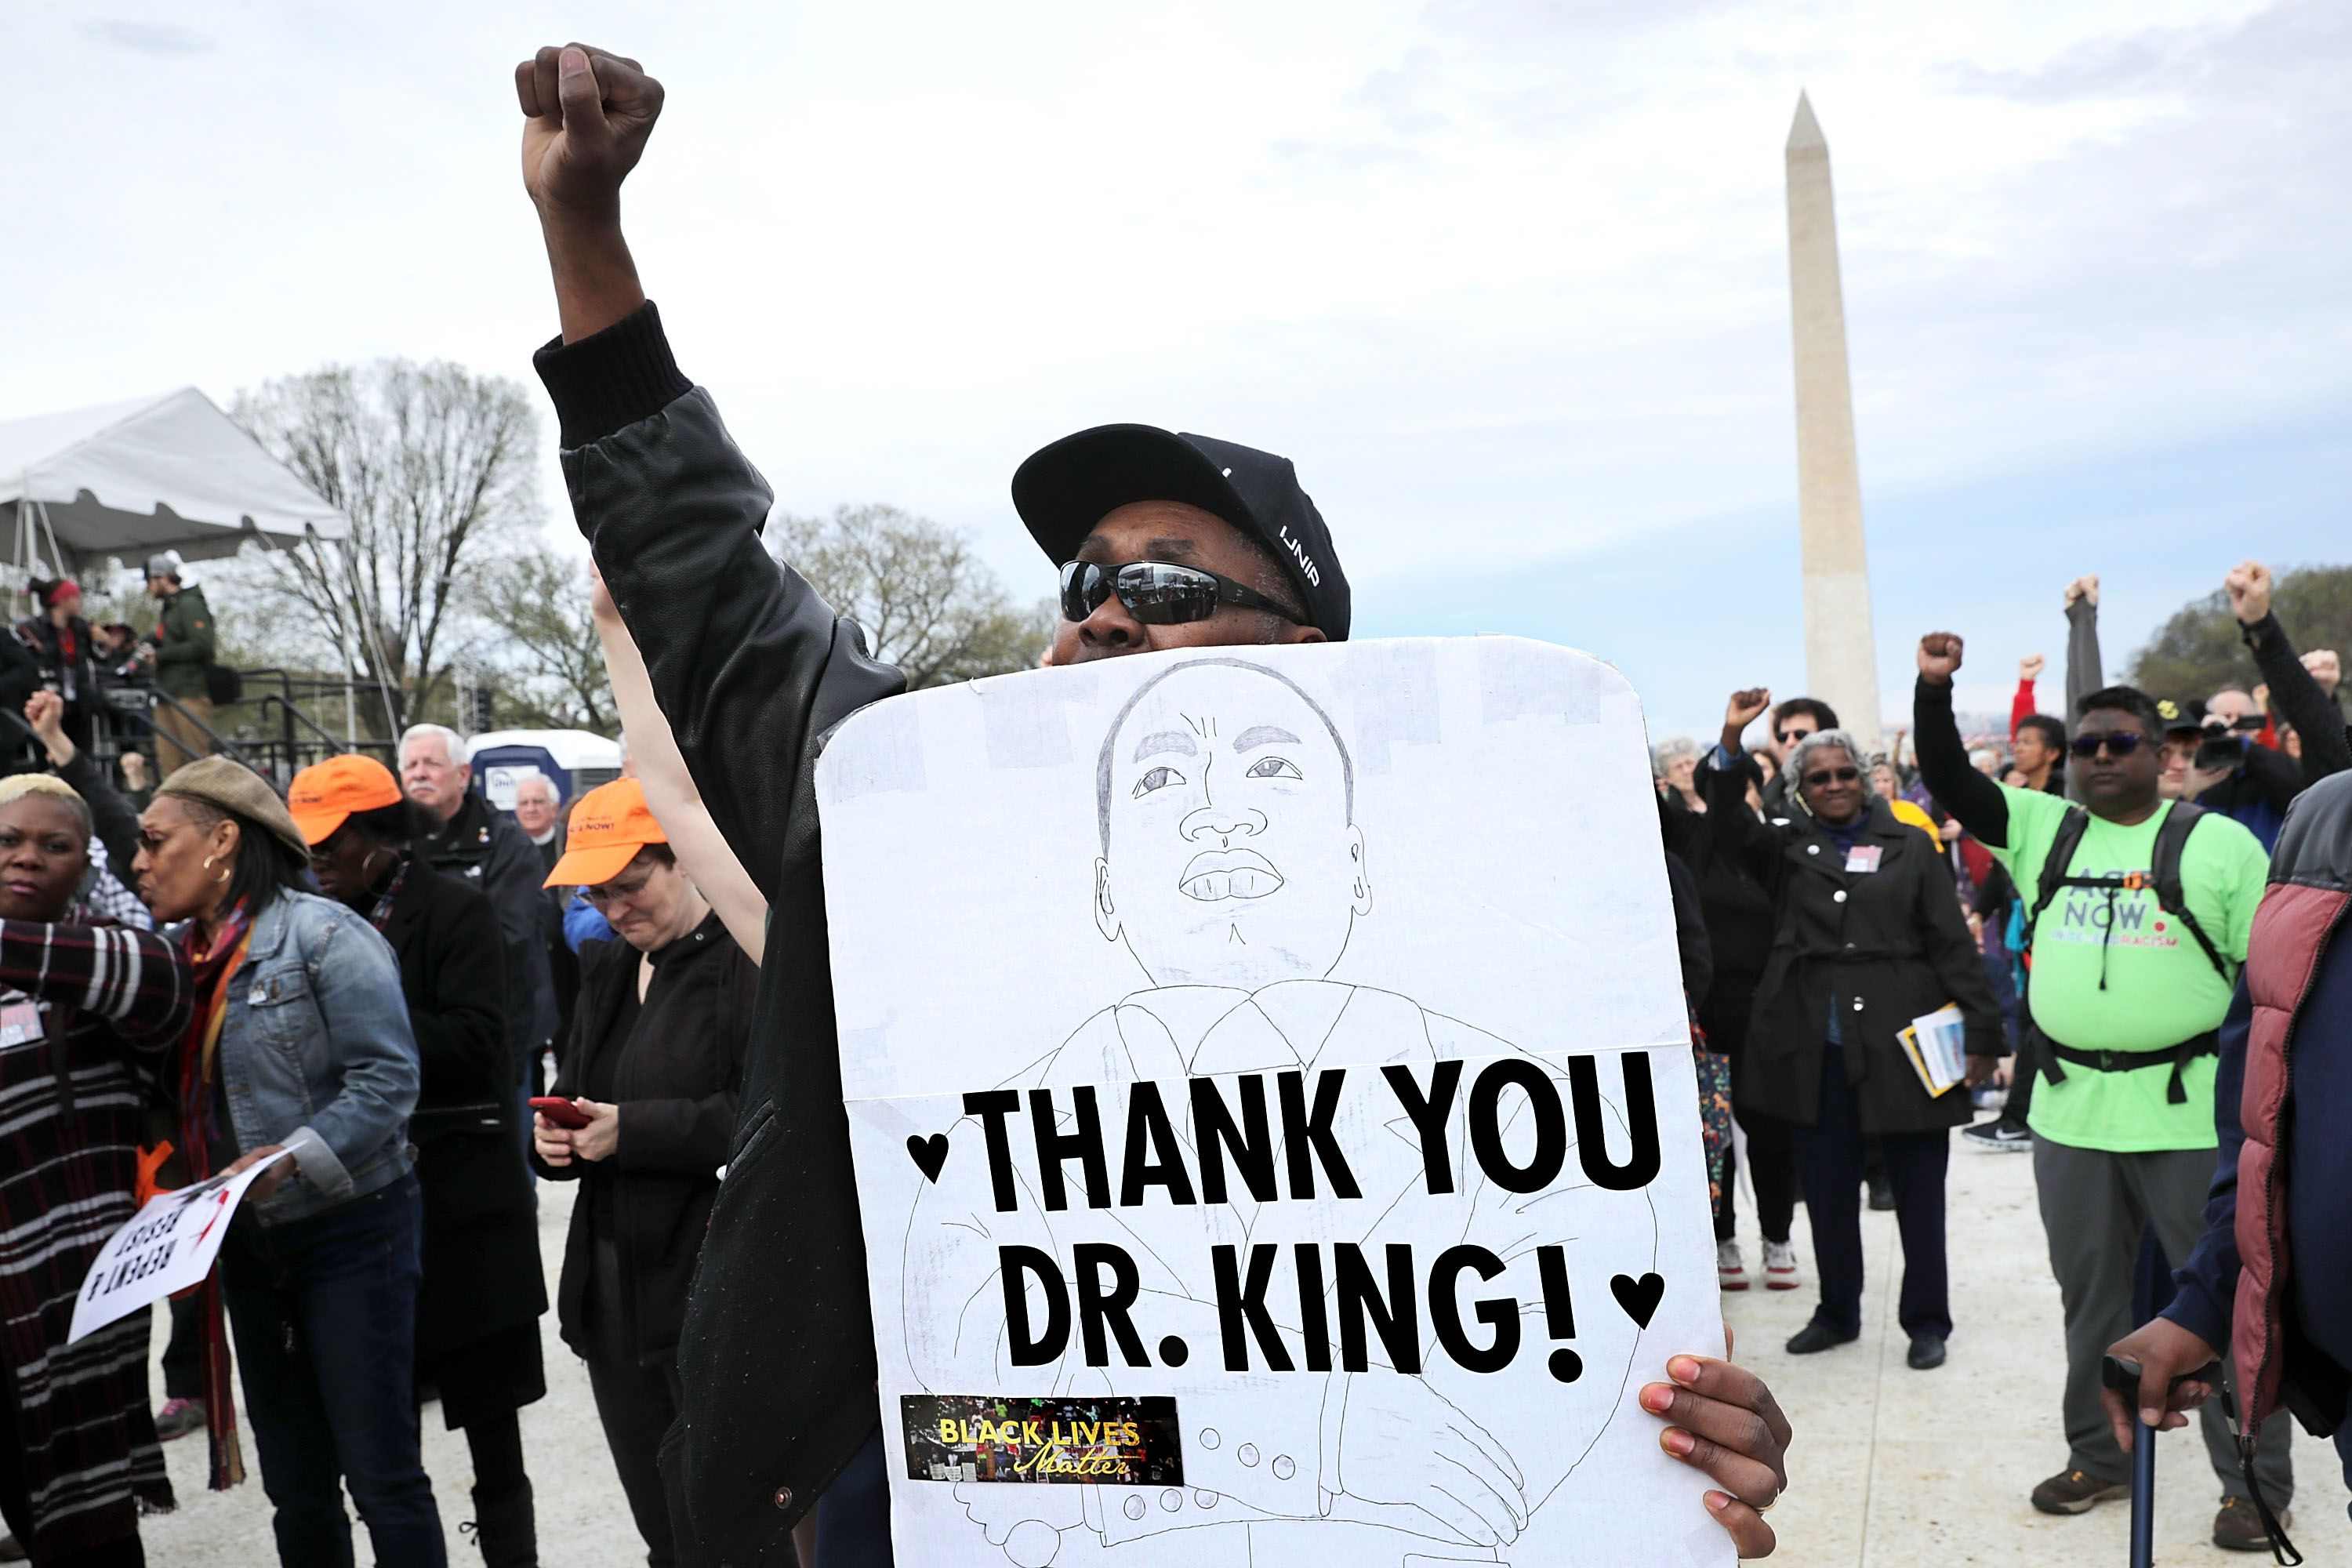 Thousands gather on the National Mall for a prayer rally to mark the 50th anniversary of Dr. Martin Luther King Jr.'s assassination